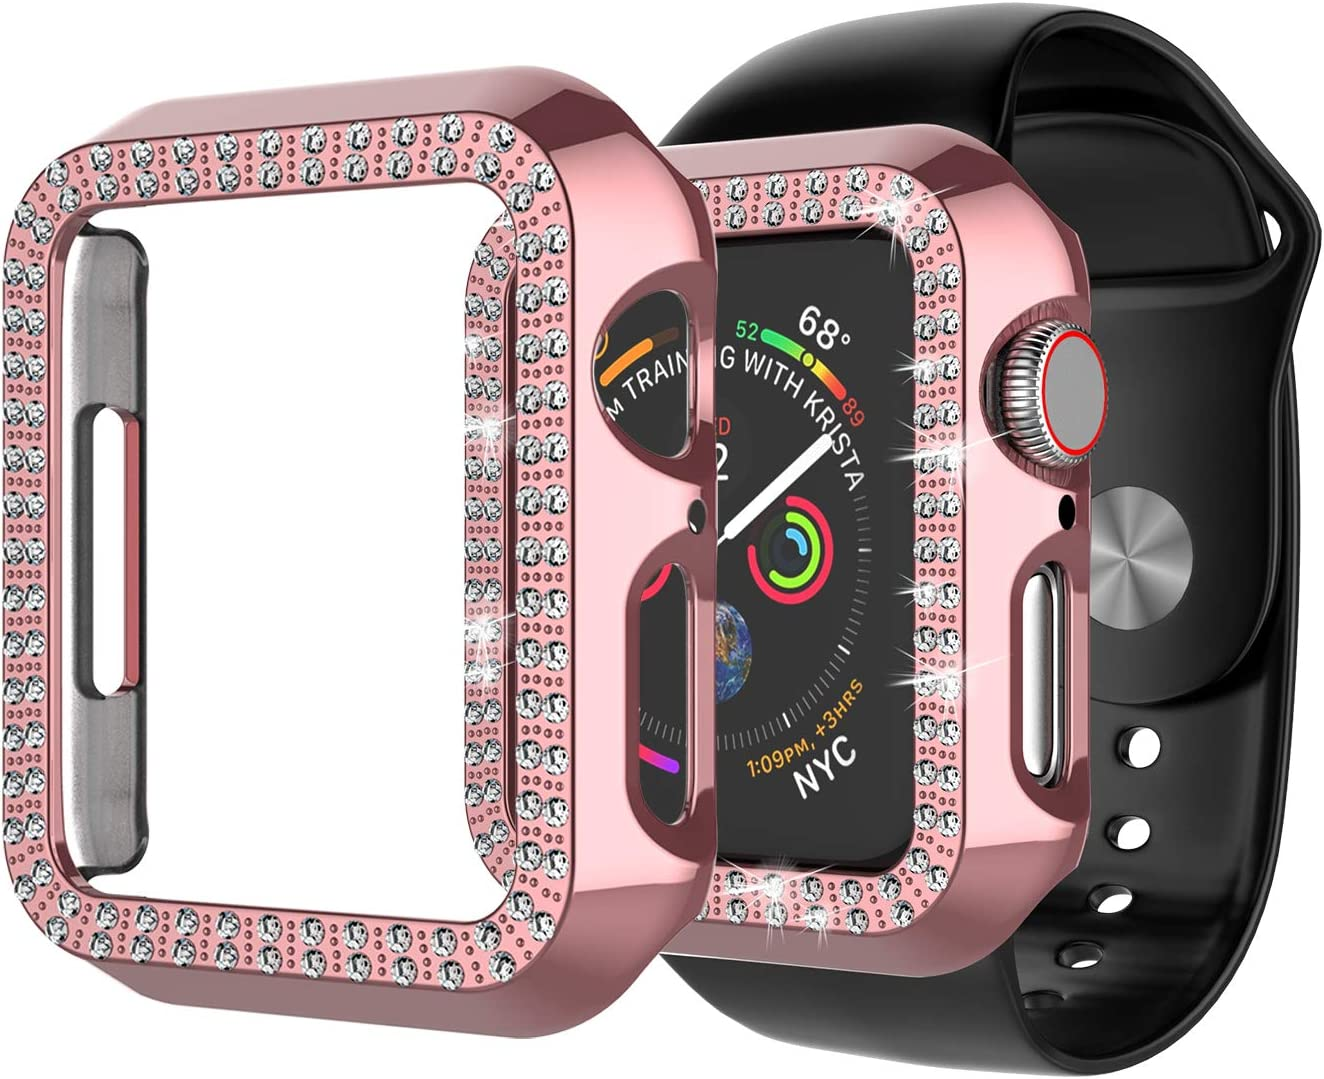 Tiflook Case for Apple Watch 42mm Series 3 2 1, Double Row Crystal Diamond Bling Hard Shockproof Anti Scratch Protective Case Plastic Frame Cover for iWatch Series 3 Series 2 Series 1, Rose Gold